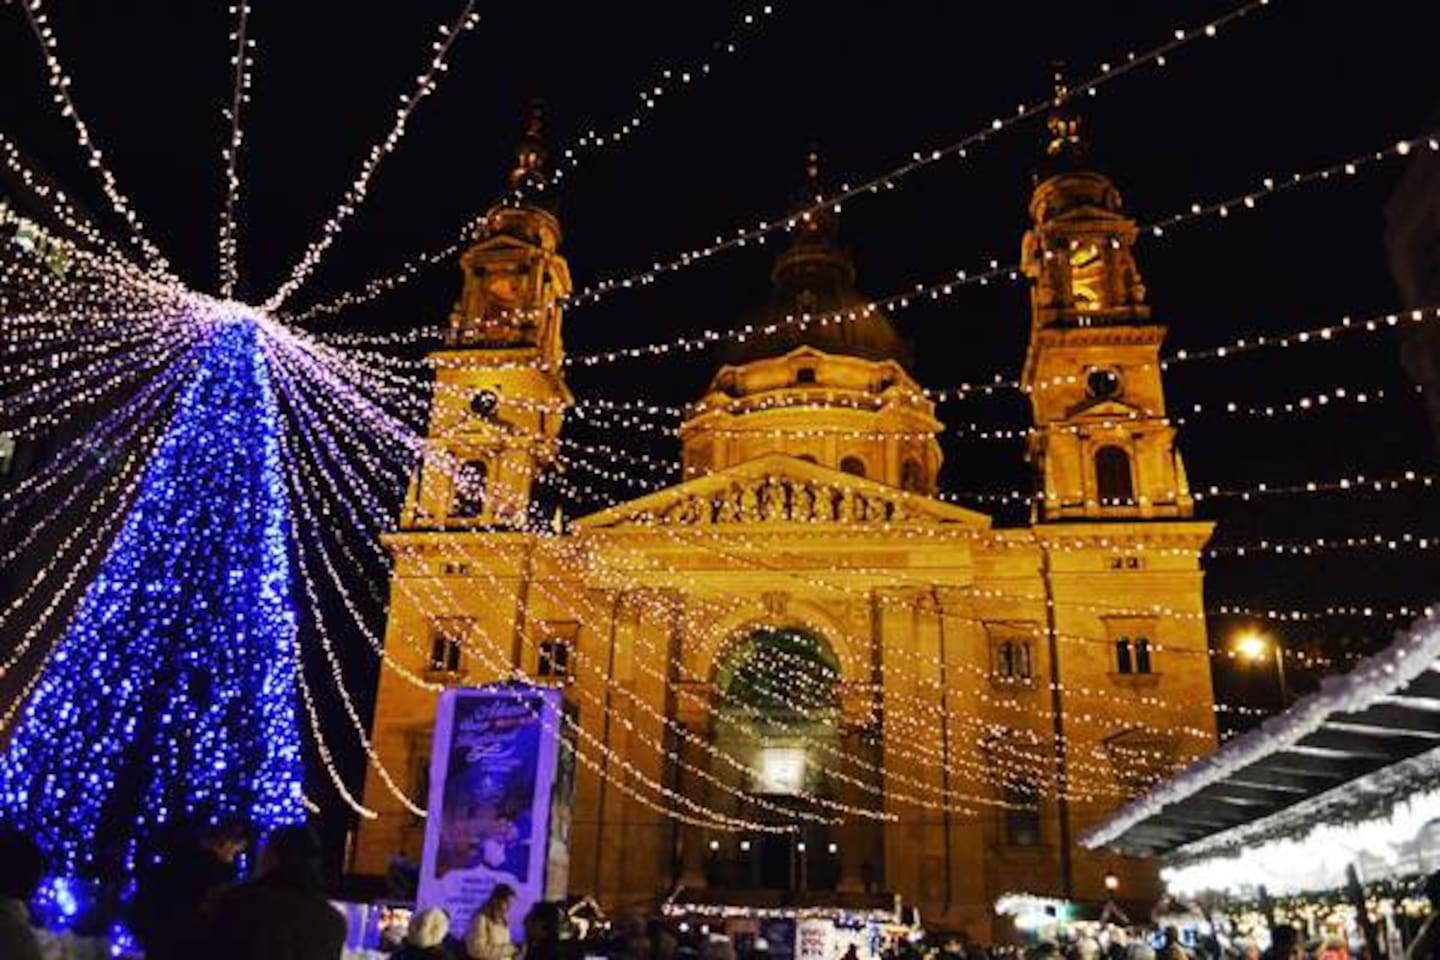 Christmas Market at St. Stephens Cathedral (Basilica)